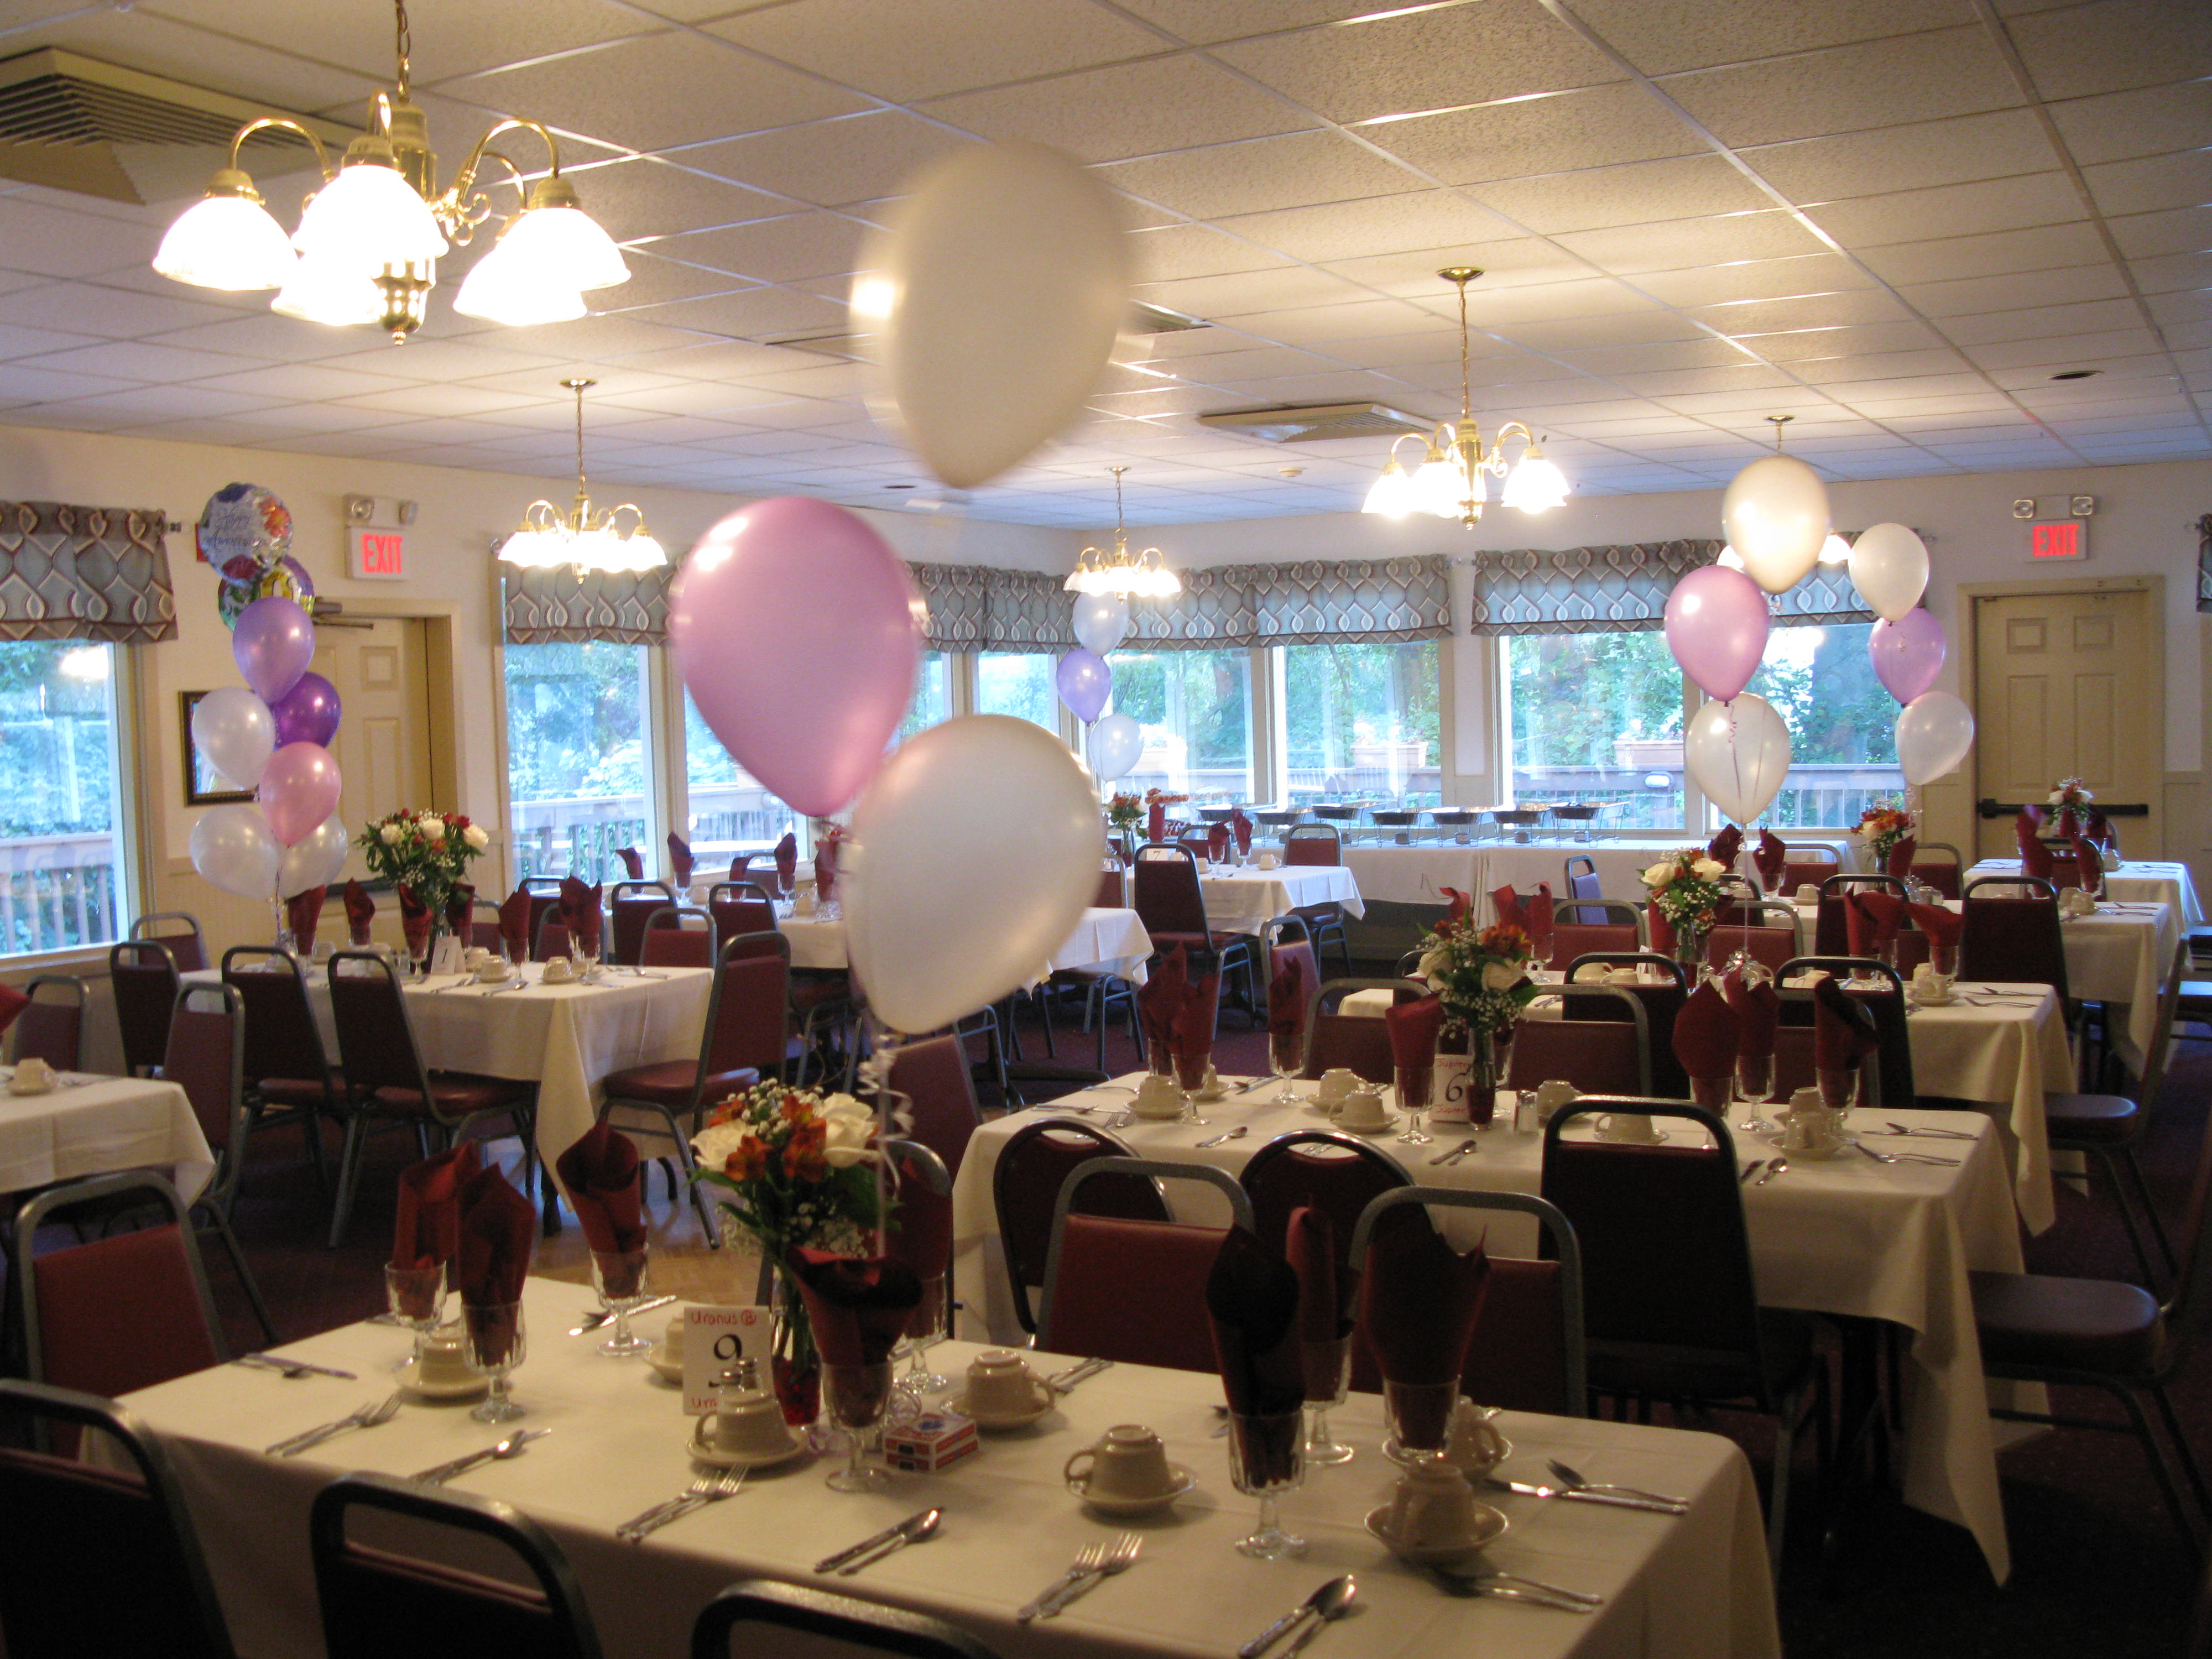 Hall Rental or Catering